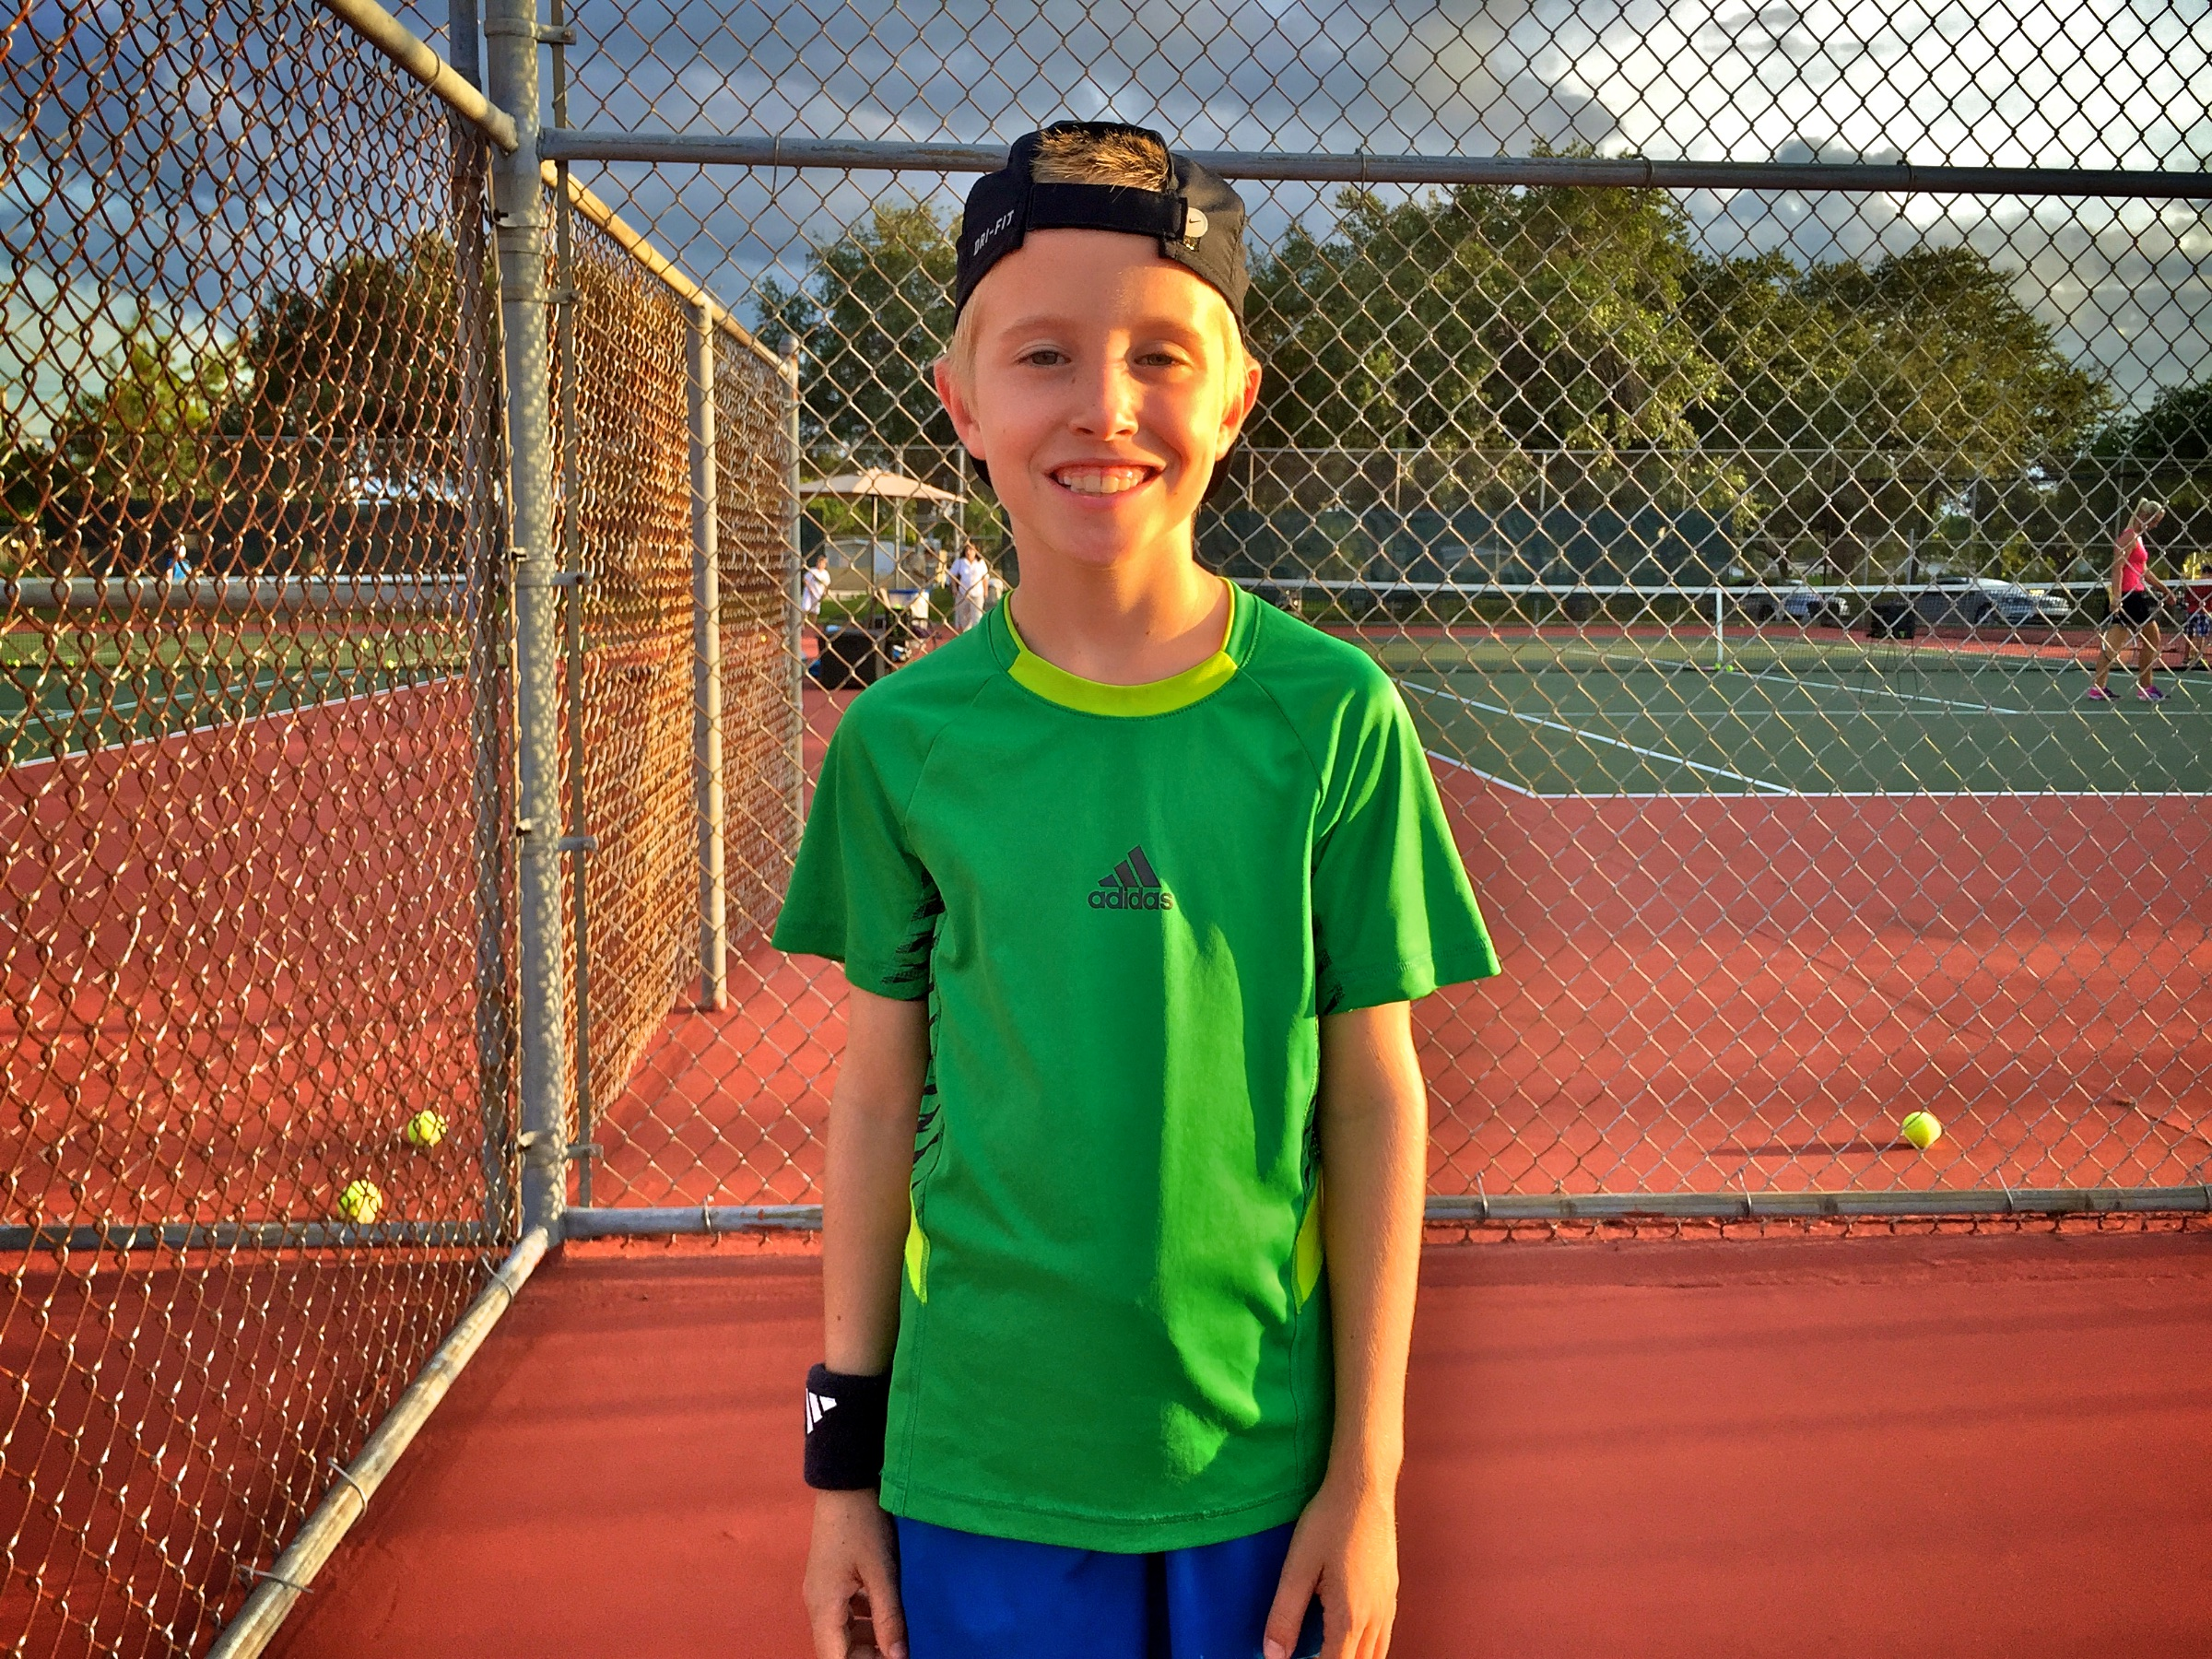 USTA Tennis Ranking List Boys 10 B10 Pathway Florida – December 1, 2015